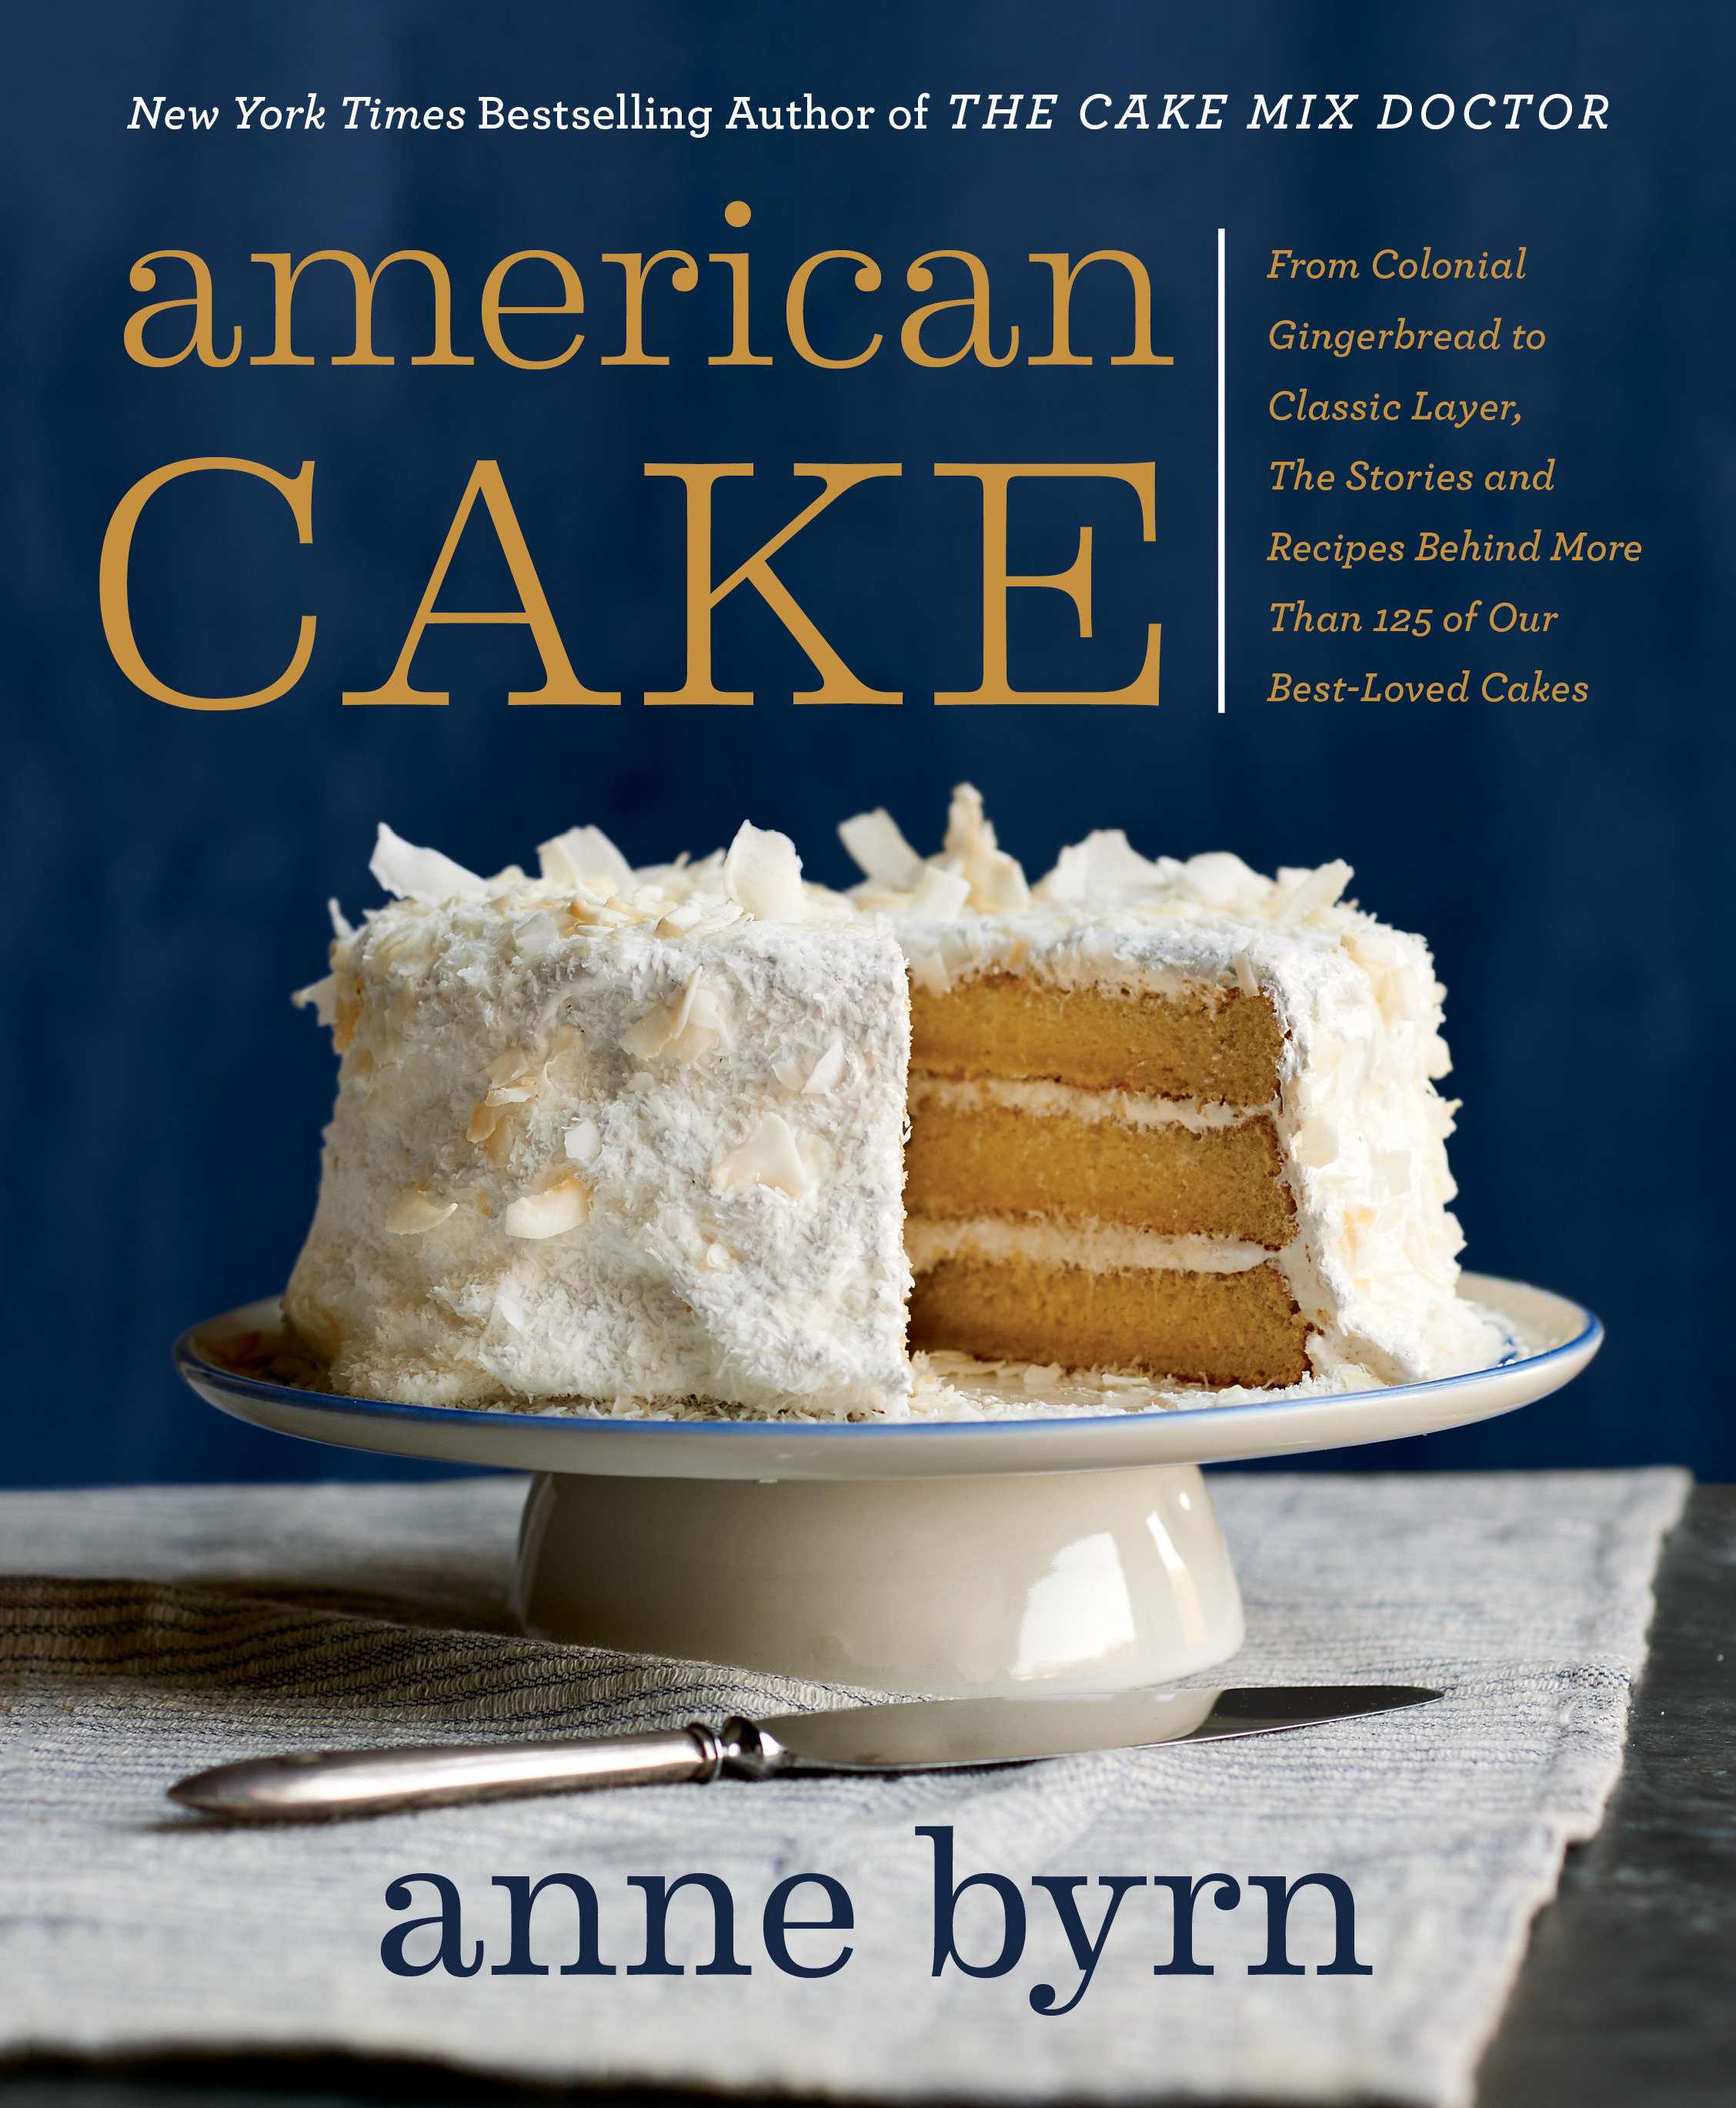 American Cake From Colonial Gingerbread to Classic Layer, the Stories and Recipes Behind More Than 125 of Our Best-Loved Cakes